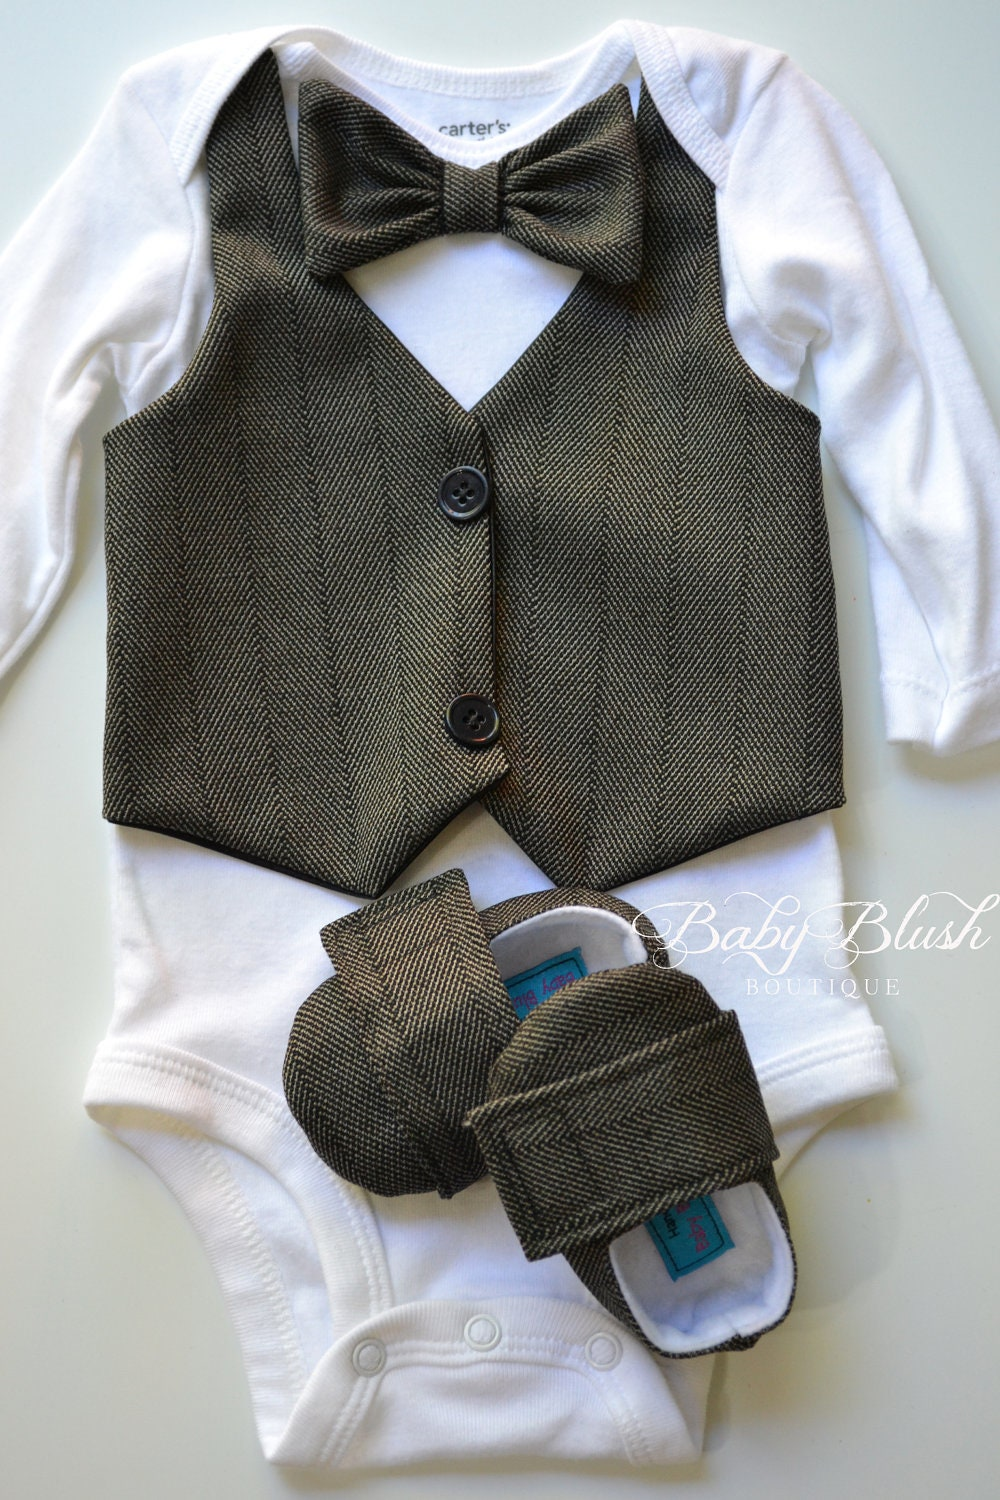 You searched for: baby boy bow tie outfit! Etsy is the home to thousands of handmade, vintage, and one-of-a-kind products and gifts related to your search. No matter what you're looking for or where you are in the world, our global marketplace of sellers can help you .